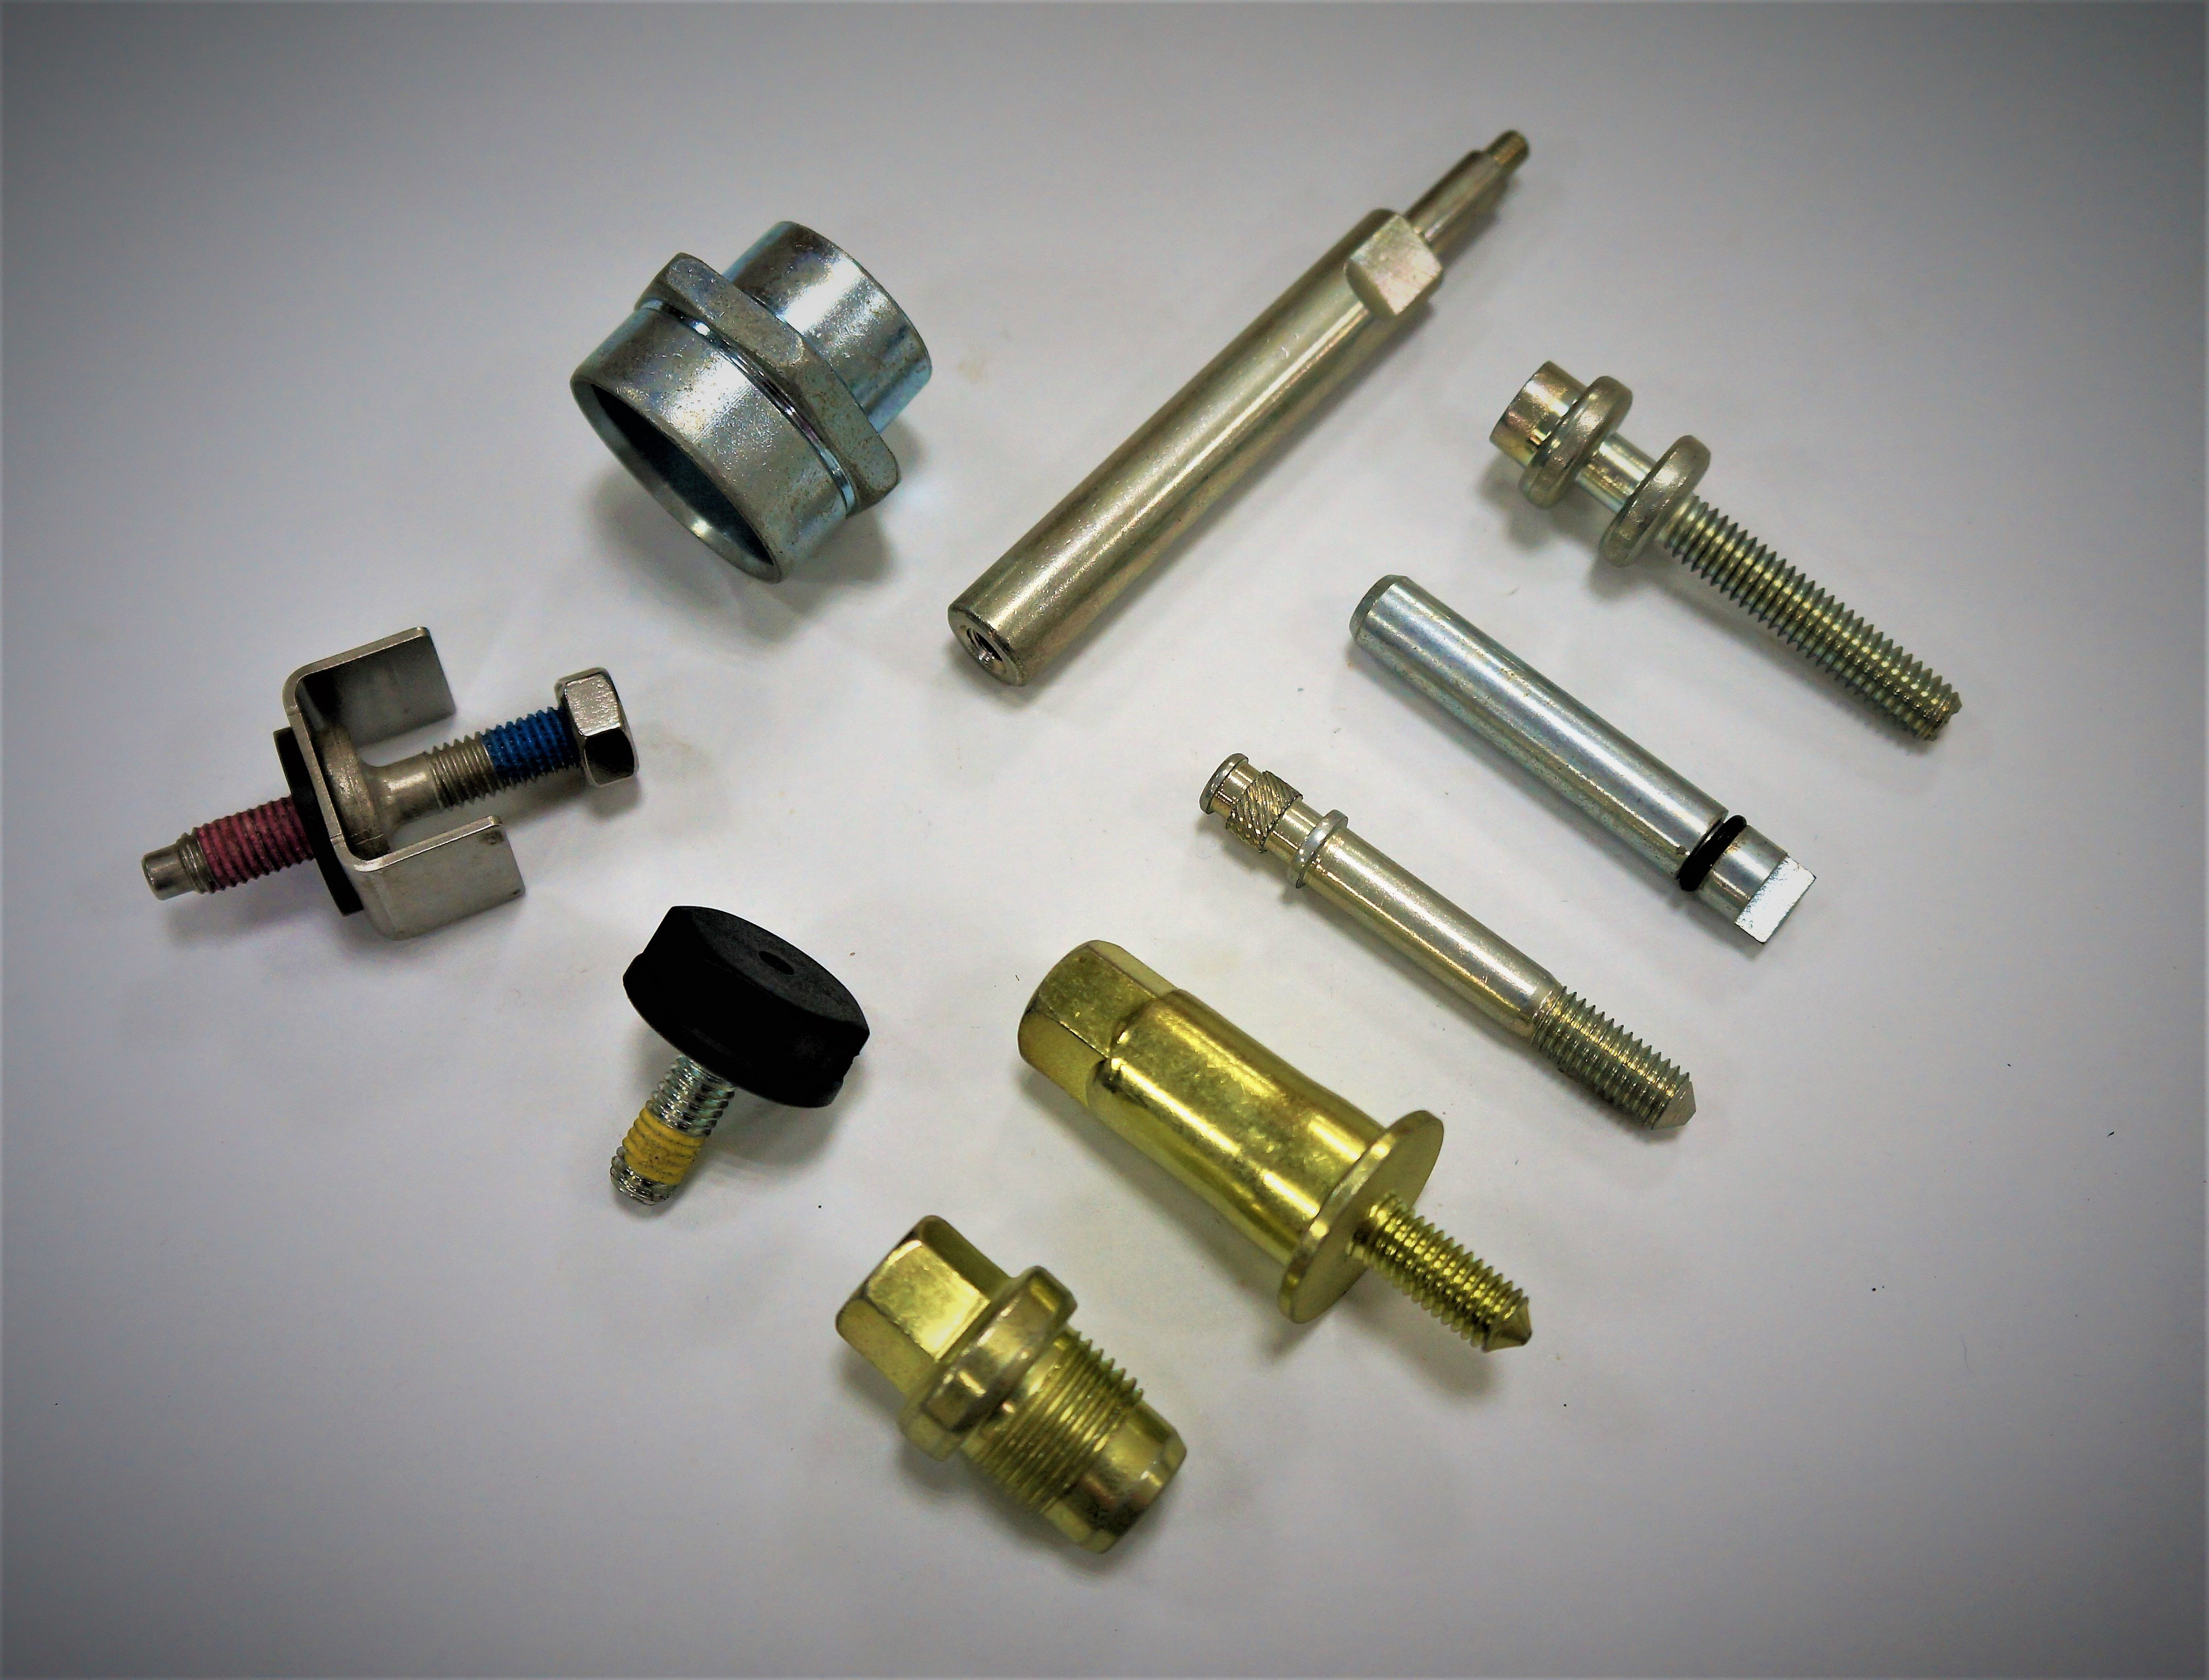 Agricultural / Tractor Special Screw with O-Ring for Vehicle Fastener made by Sunny Screw Industry 三能螺栓工業股份有限公司 - MatchSupplier.com